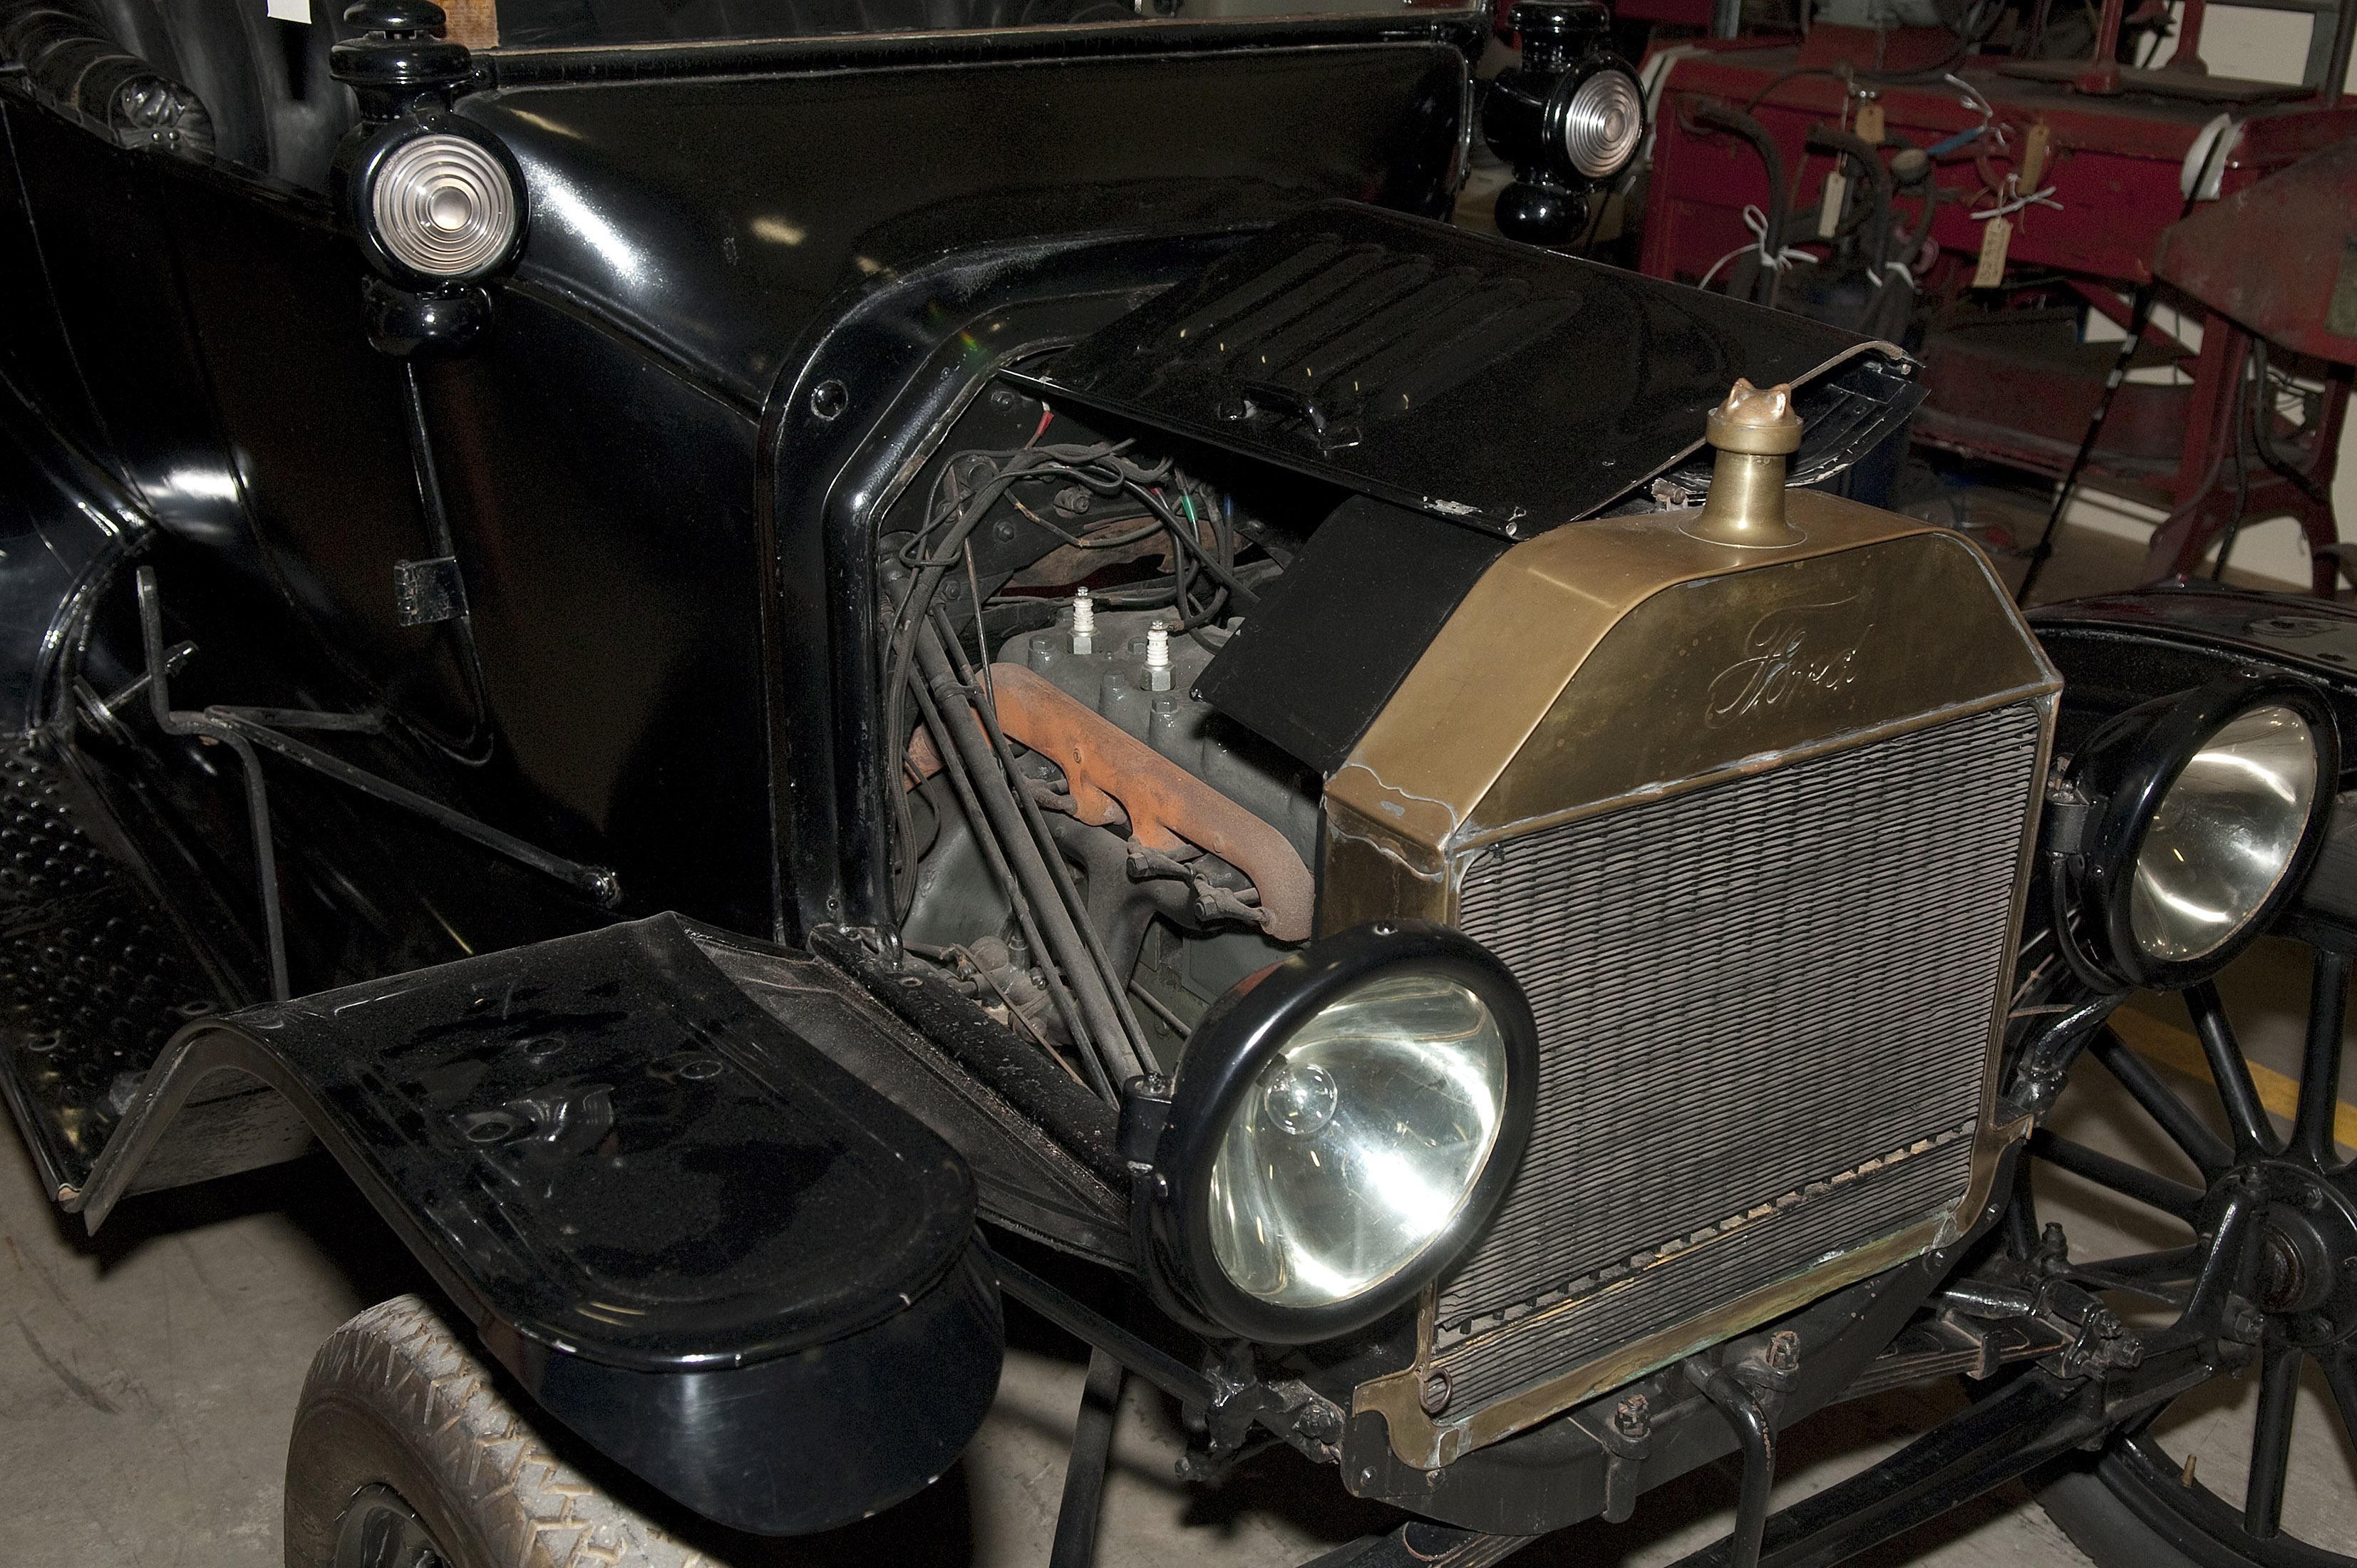 Henry Fords Model T And Its Impact In Australia Inside The Collection Driving Light Wiring Australian Land Rover Owners Detail Showing Engine Radiator Of Ford Motor Car Made At Walkerville Factory